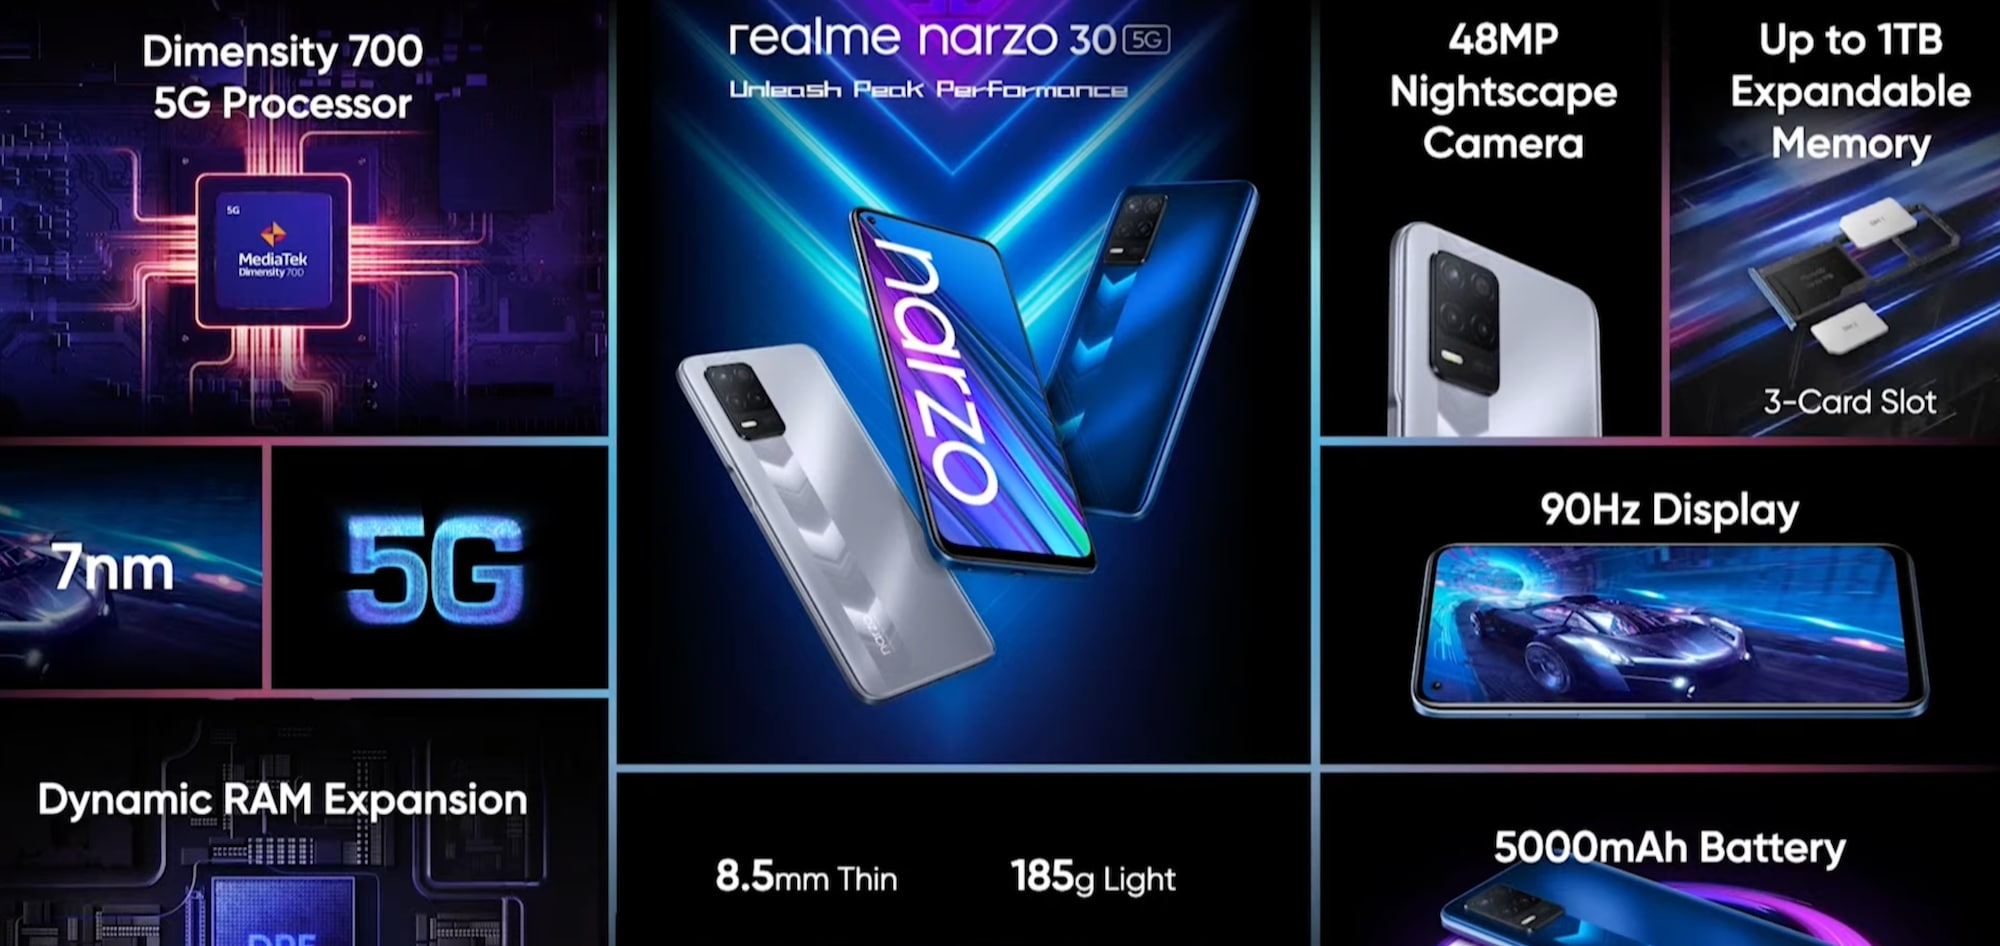 Realme Narzo 30 5G specifications.